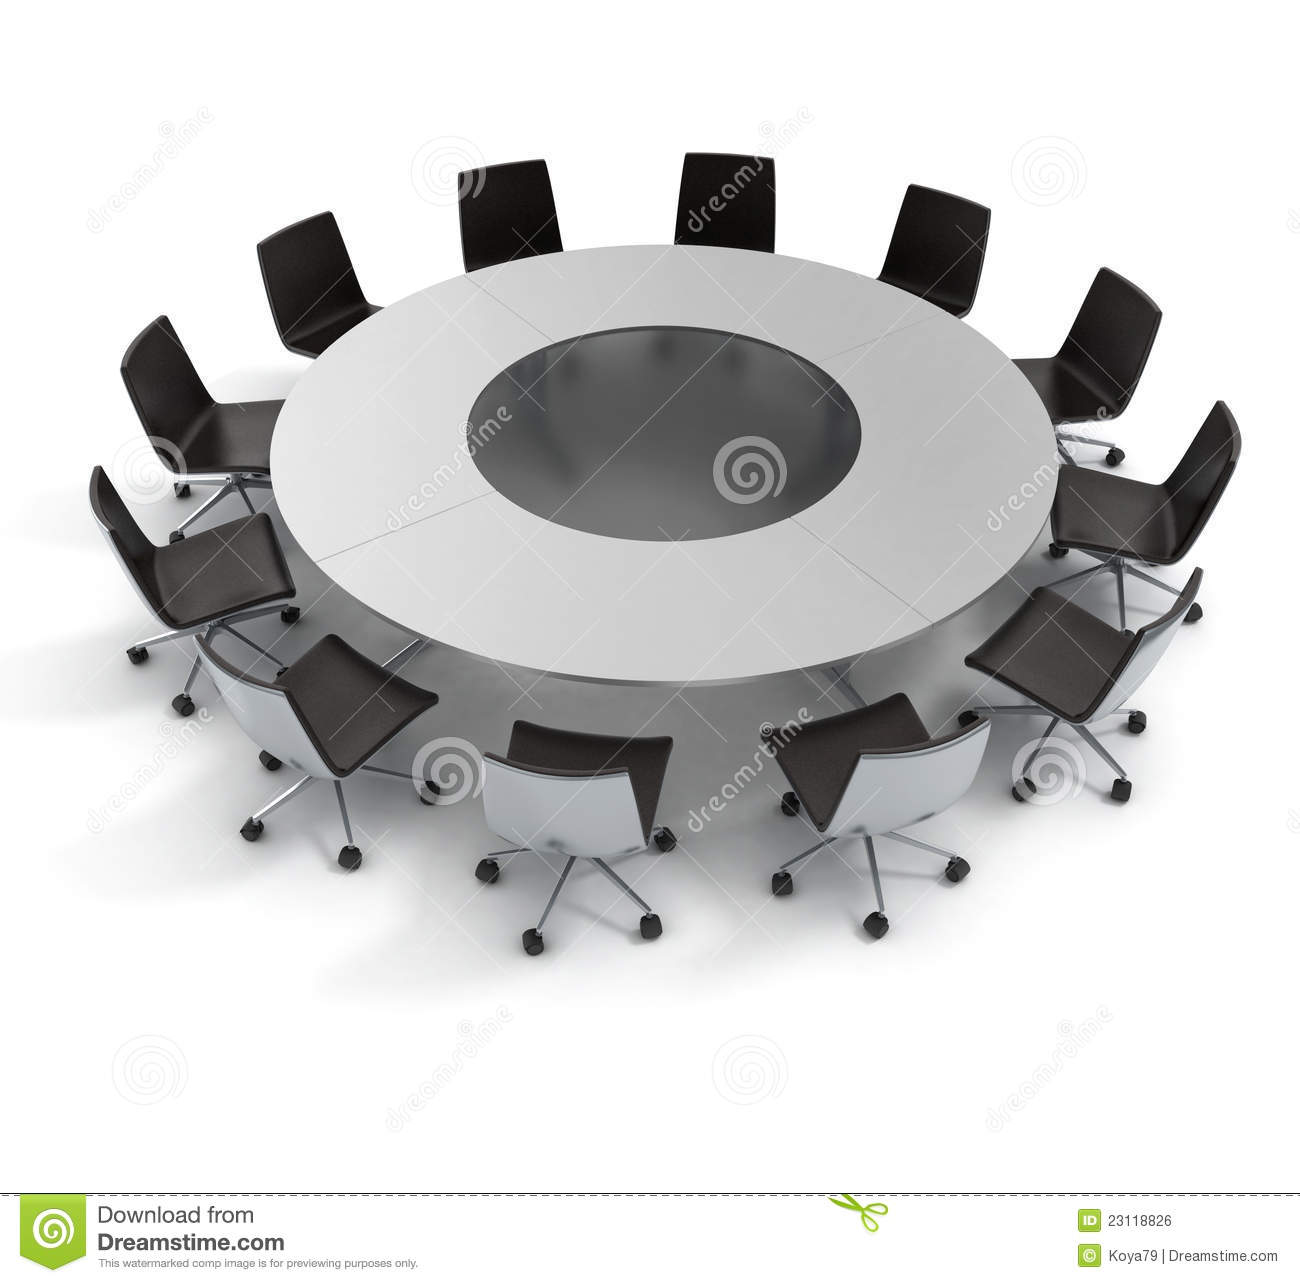 Wonderful Round Table Meeting Clip Art 1300 x 1283 · 86 kB · jpeg